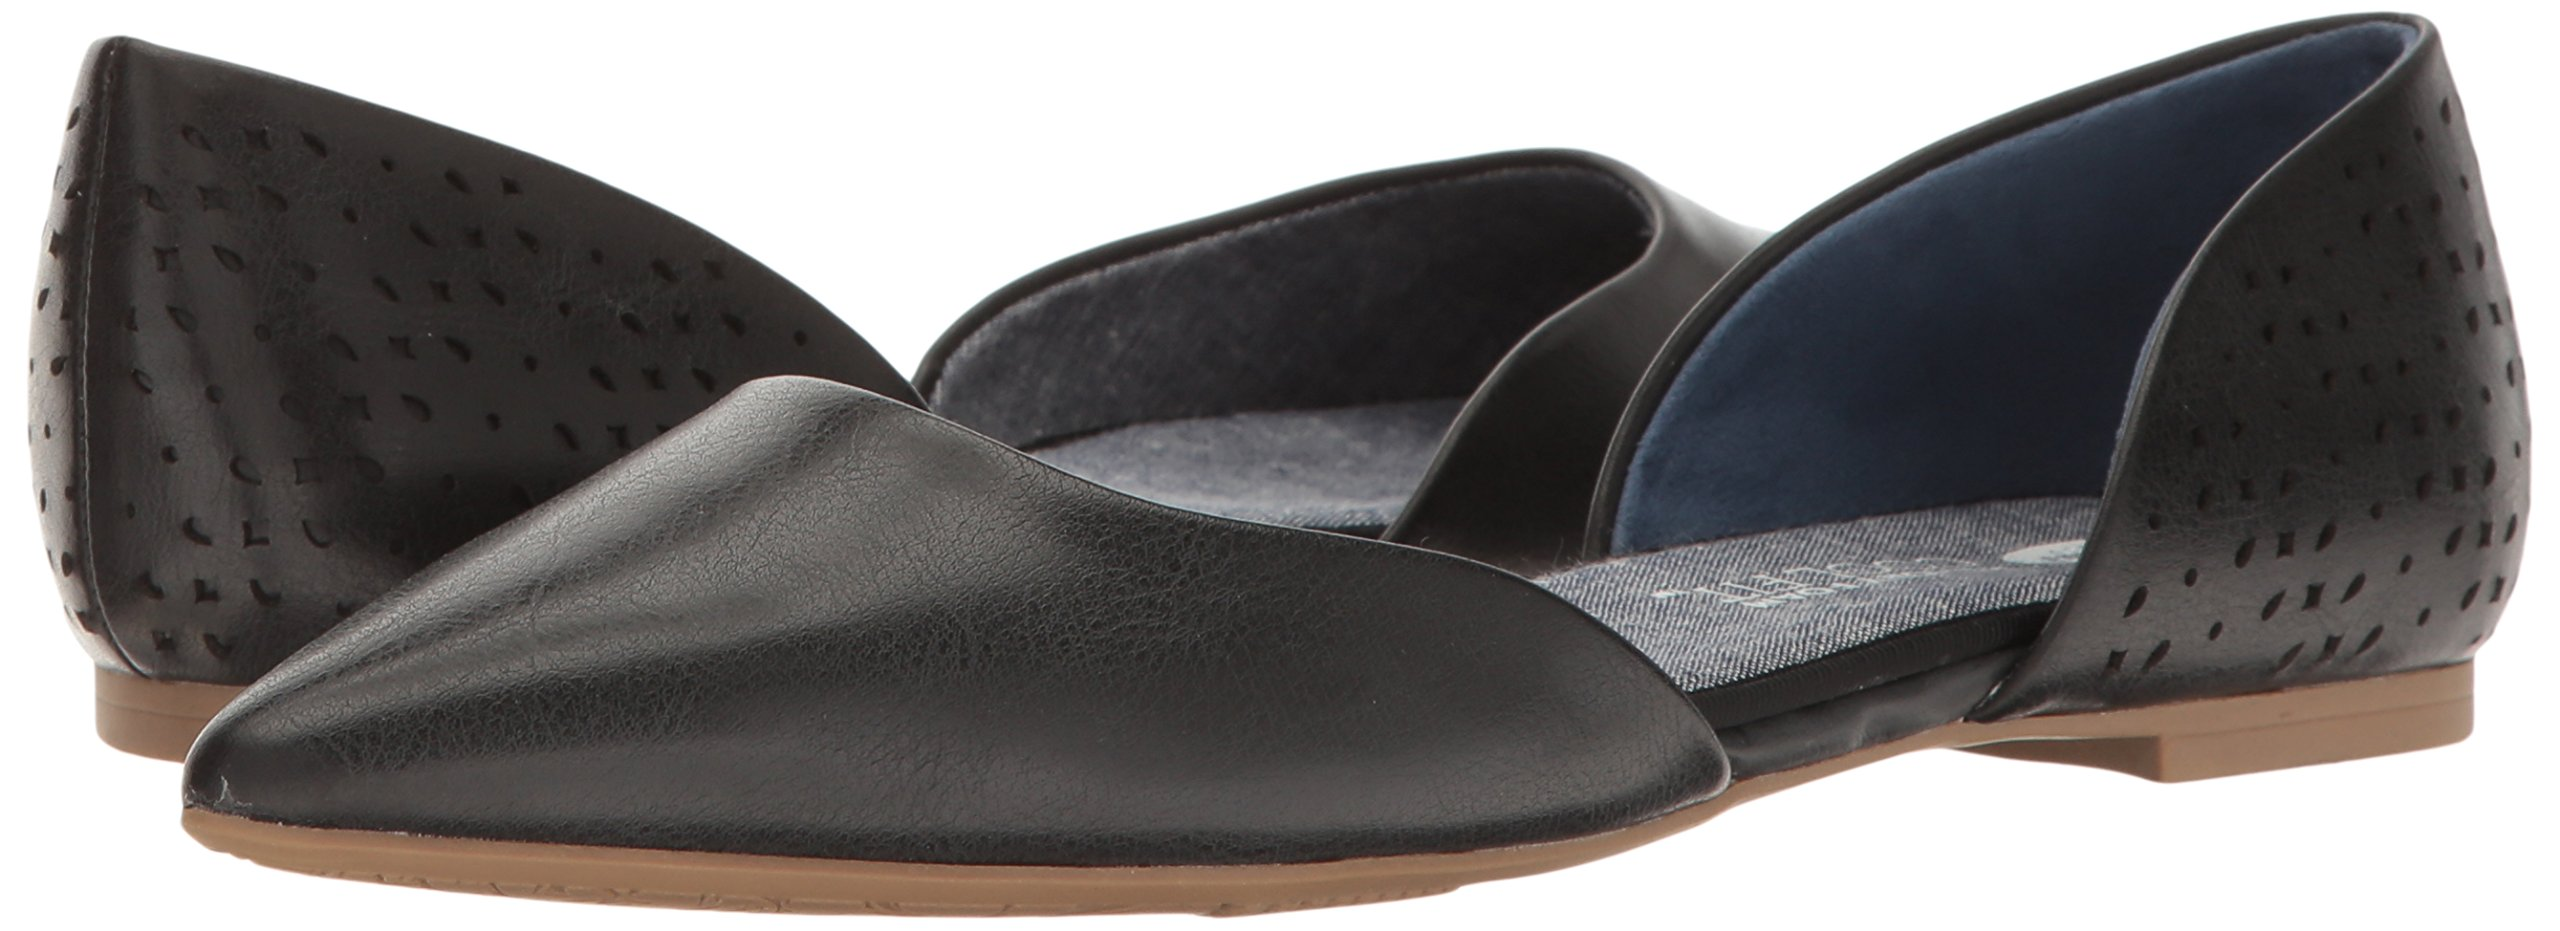 Dr. Scholl's Women's Svetlana Pointed Toe Flat, Black Perforated, 9.5 M US by Dr. Scholl's (Image #6)